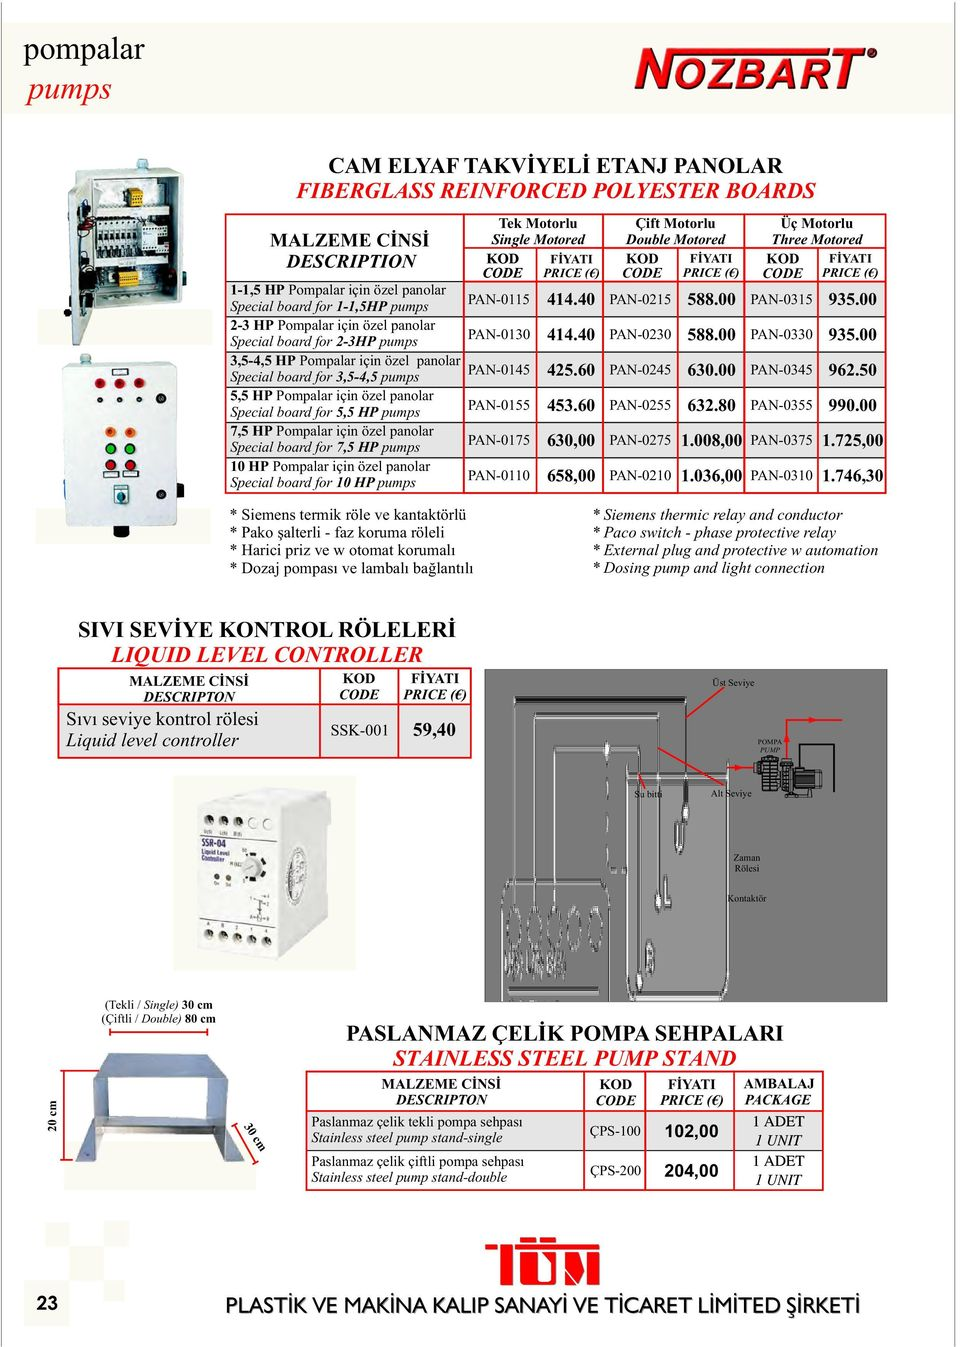 için özel panolar Special board for 1 HP Tek Motorlu Single Motored PAN-115 414.4 PAN-215 588. PAN-13 PAN-145 PAN-155 PAN-175 414.4 425.6 453.